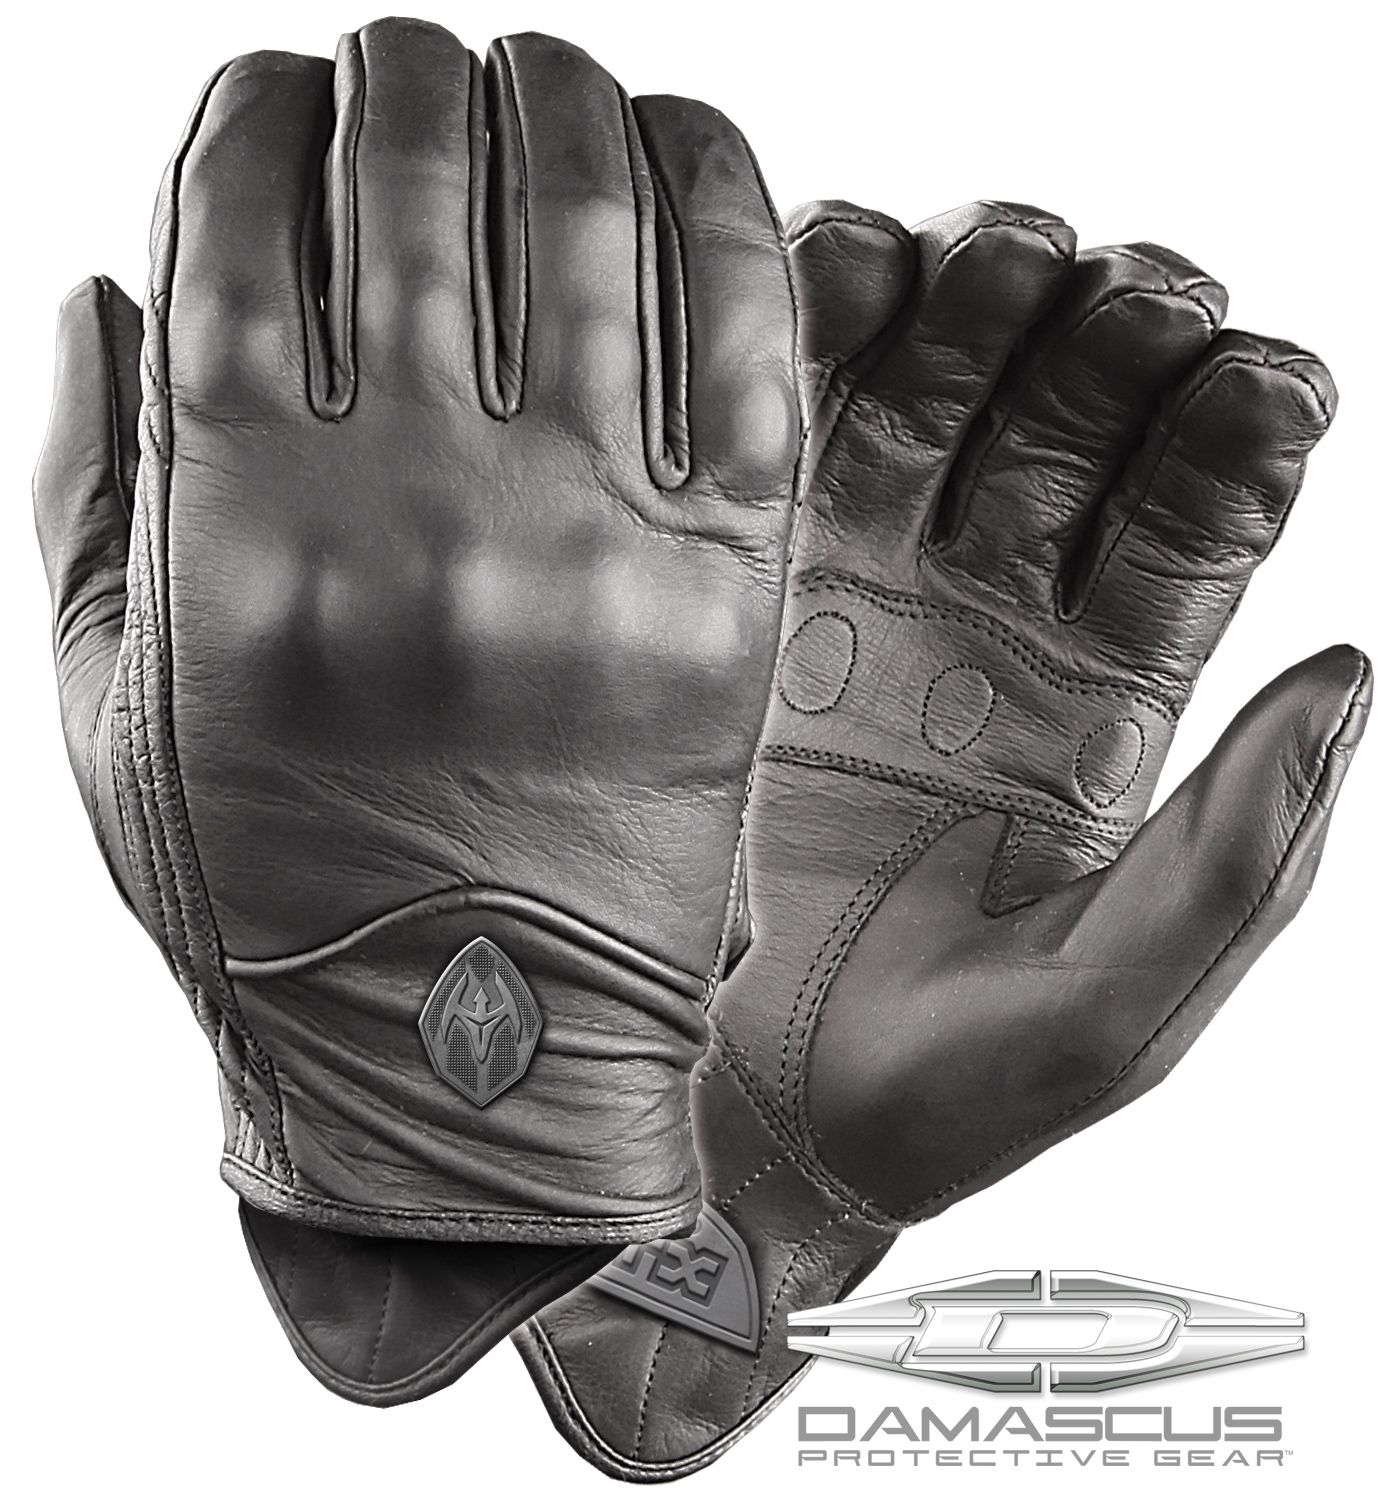 Extra small black leather gloves - Atx 95 All Leather Gloves With Knuckle Armoryour Finest Firearm Or The Sleekest